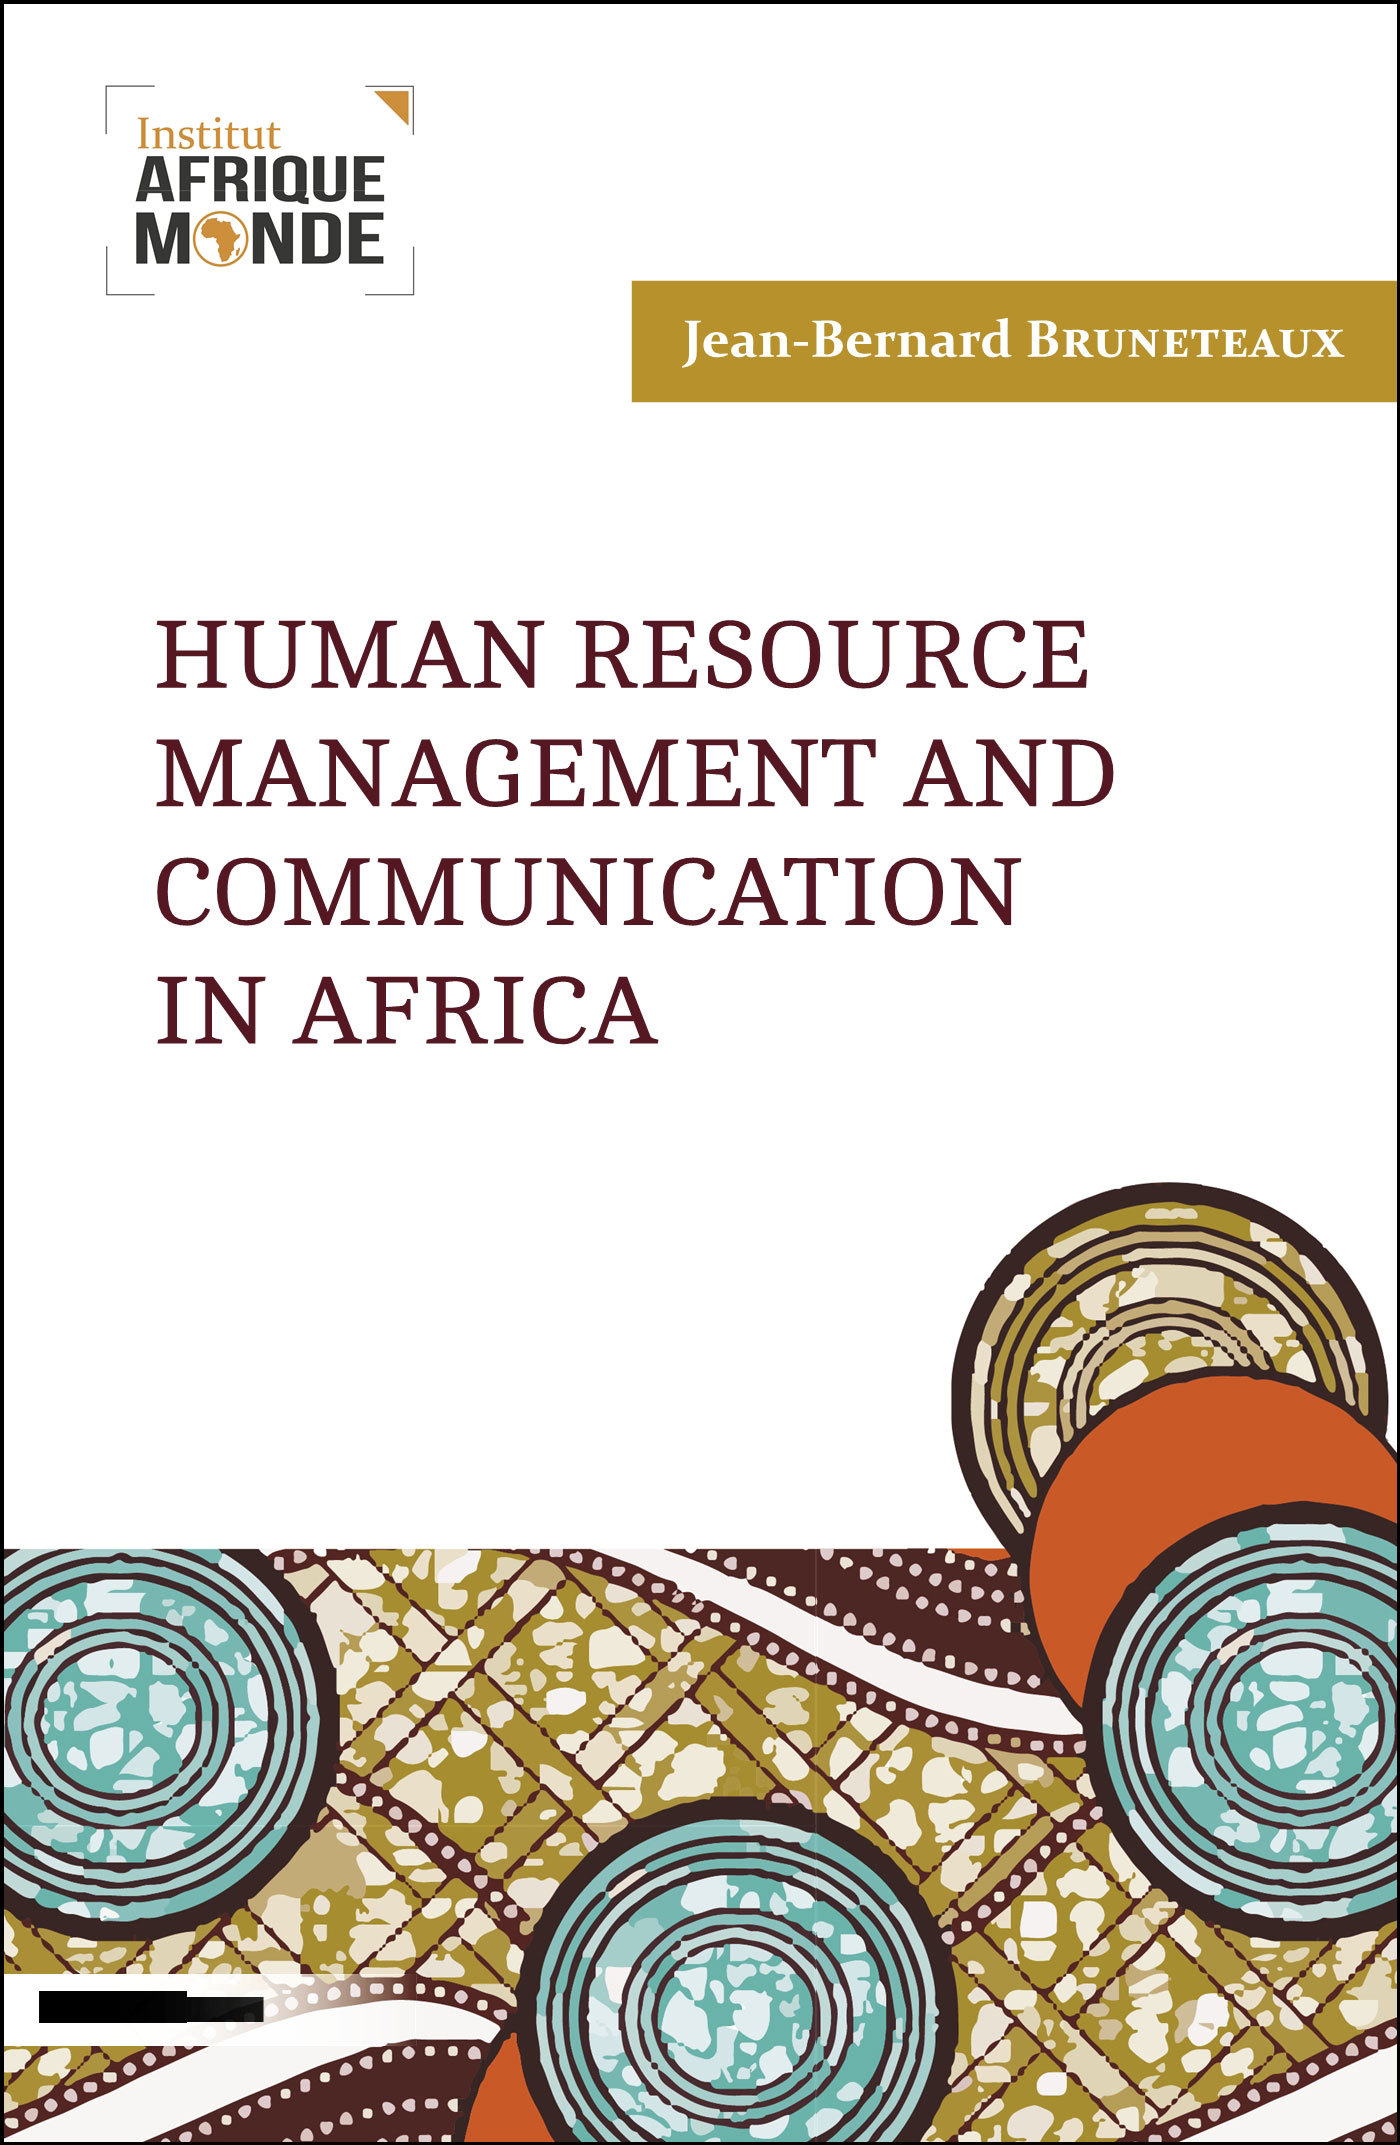 HUMAN RESOURCE MANAGEMENT AND COMMUNICATION IN AFRICA